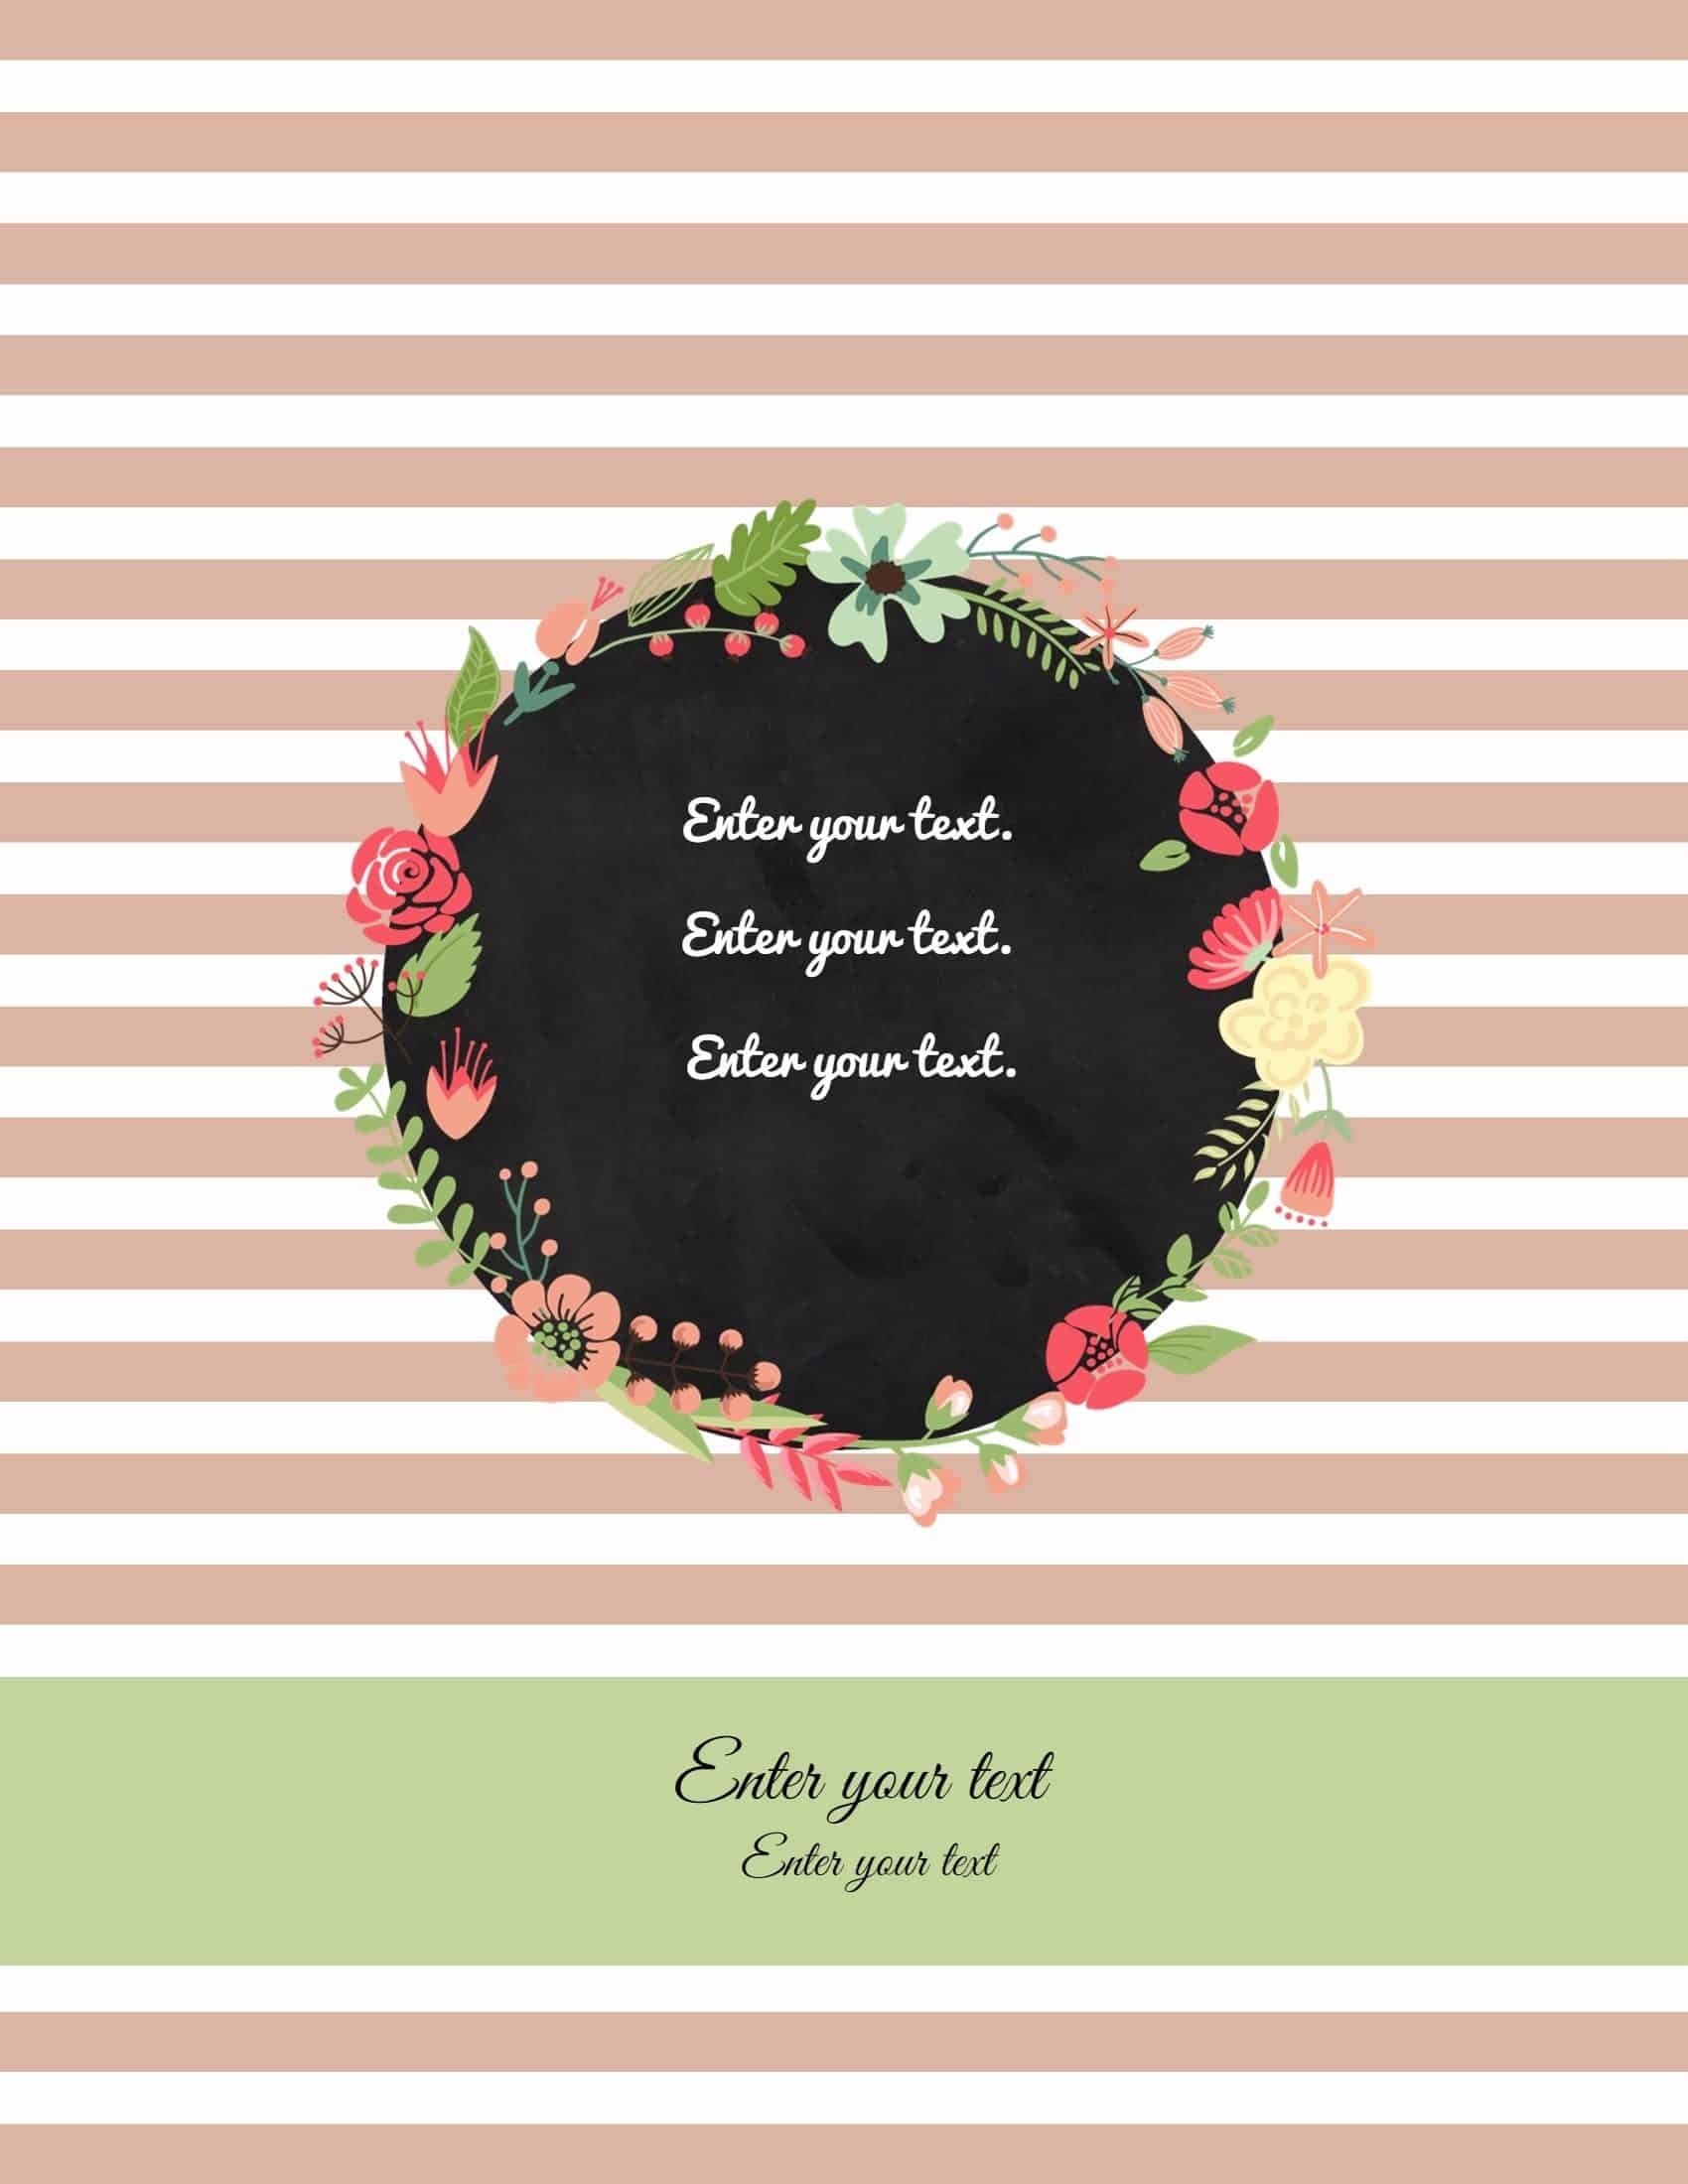 Free Binder Cover Templates | Customize Online & Print At Home | Free! - Free Printable Watercolor Notebook Covers